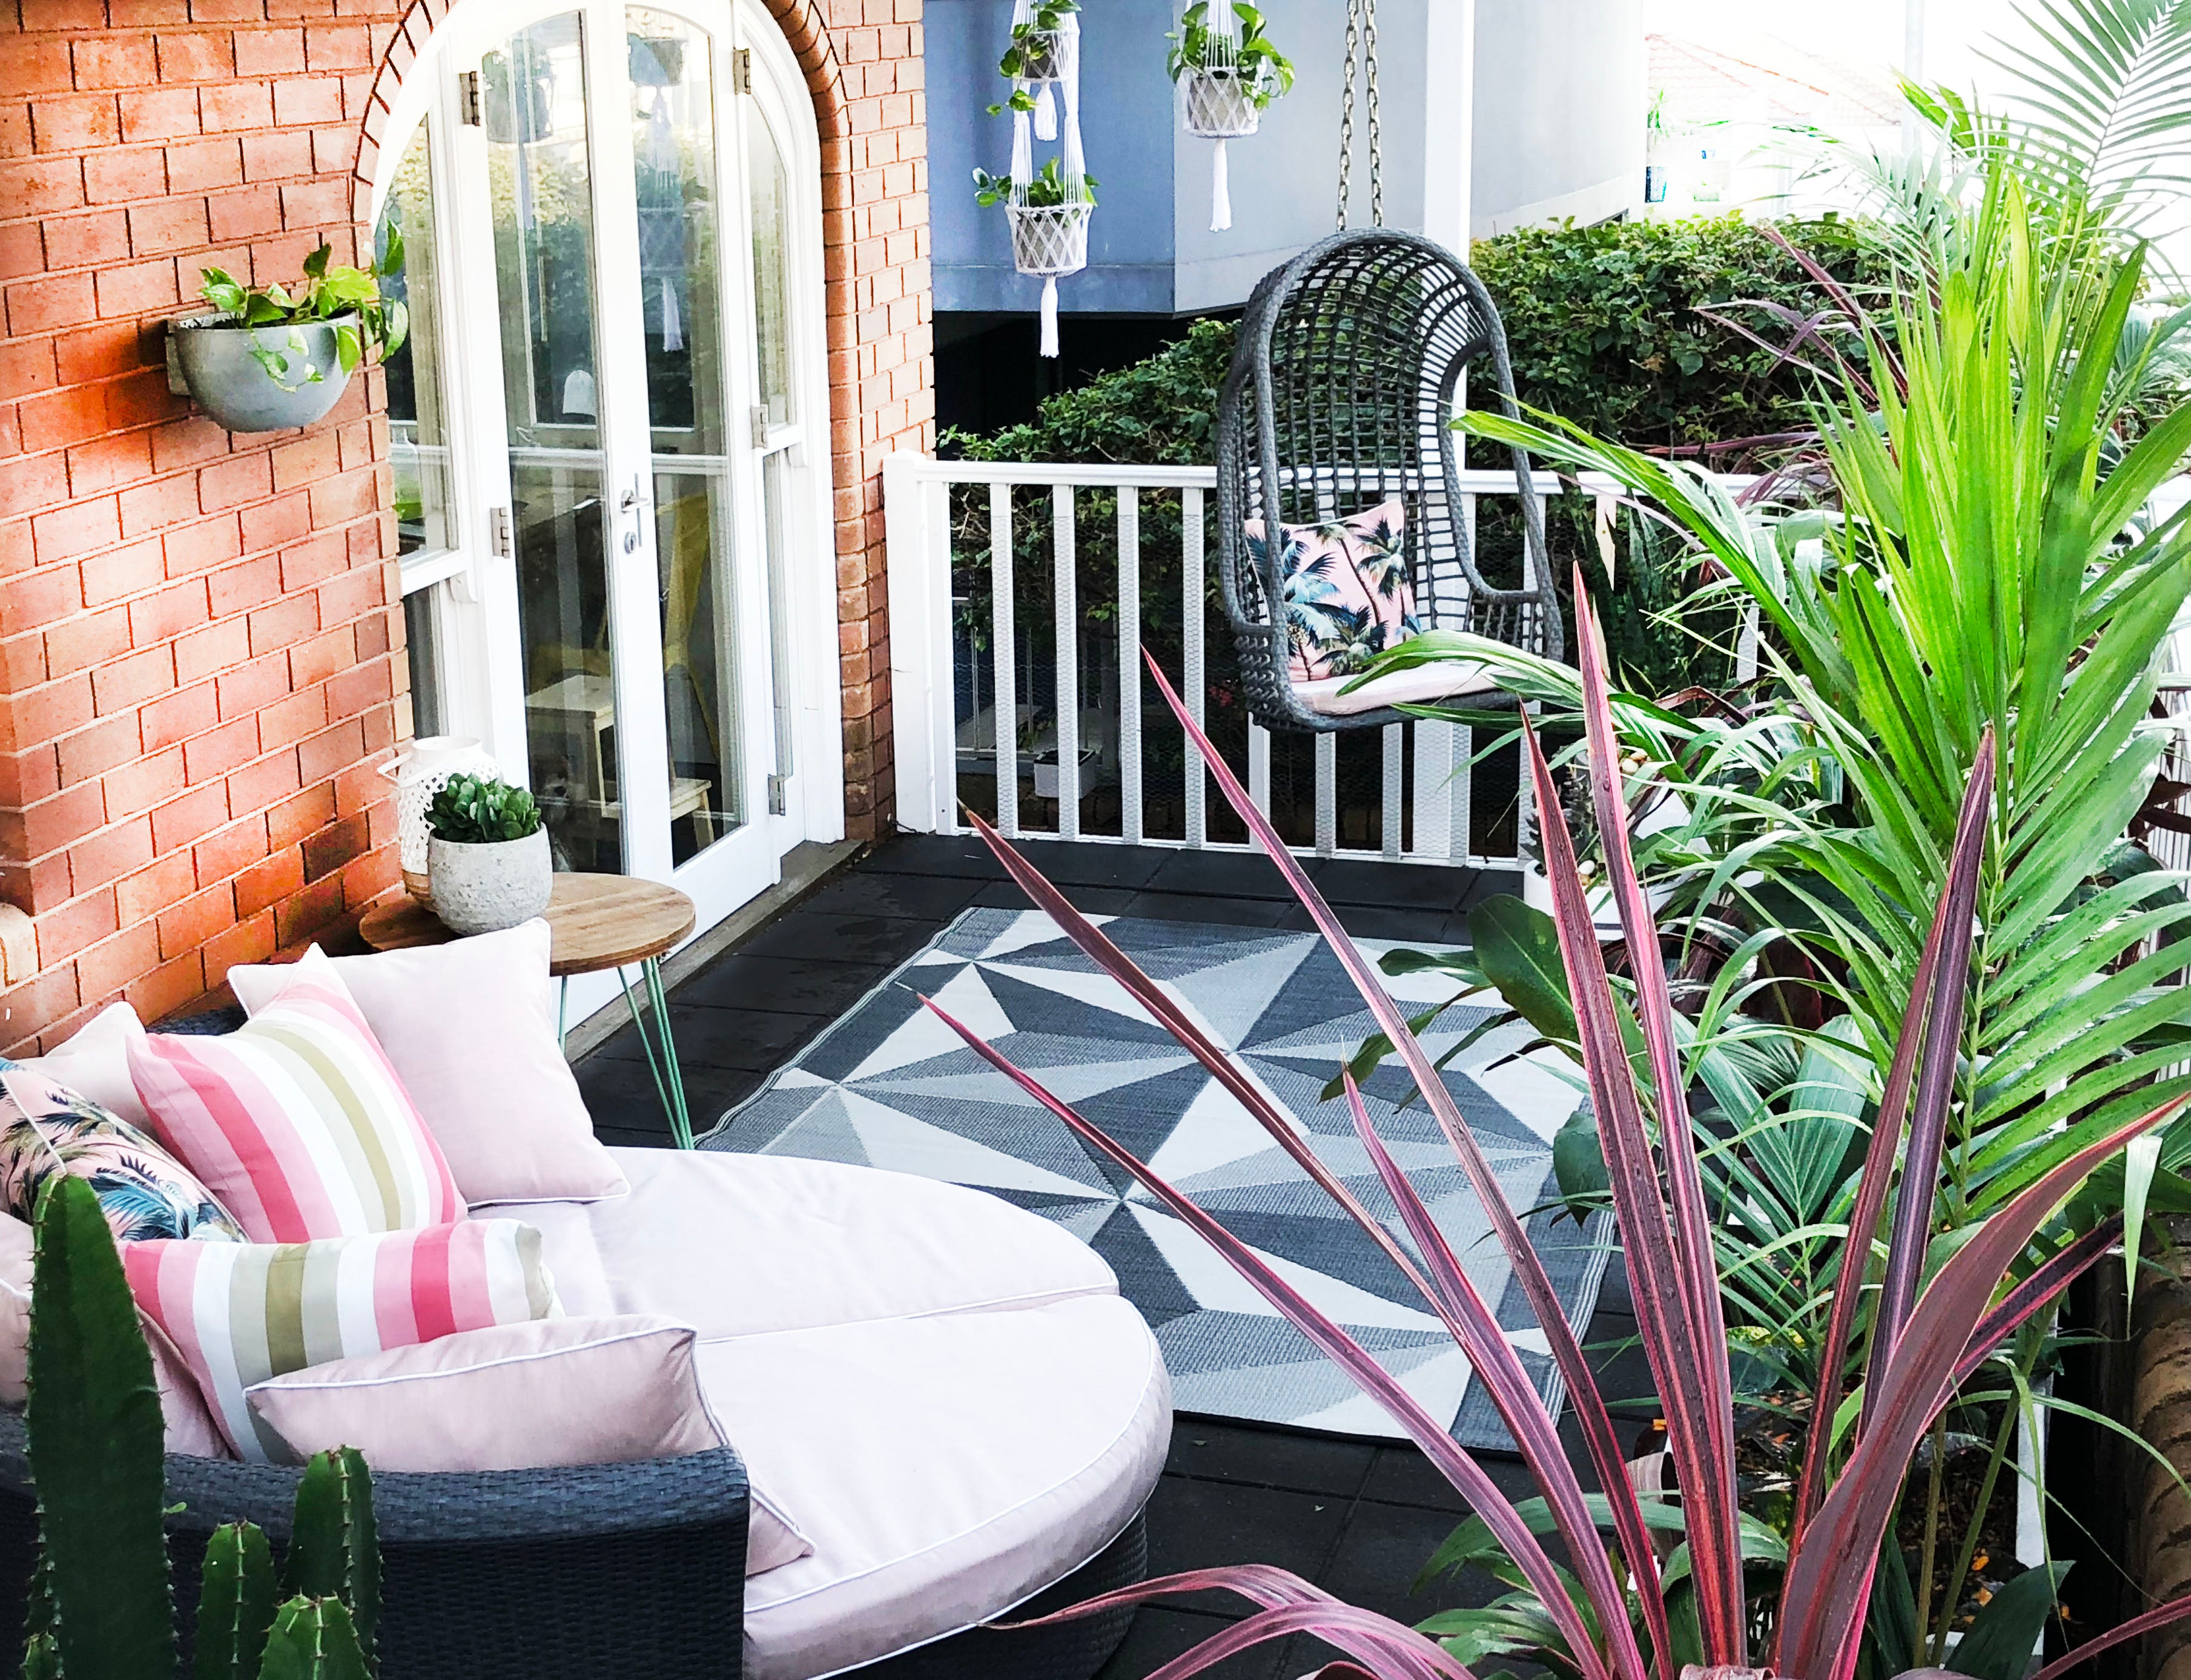 Let us help transform your space into an urban oasis .......